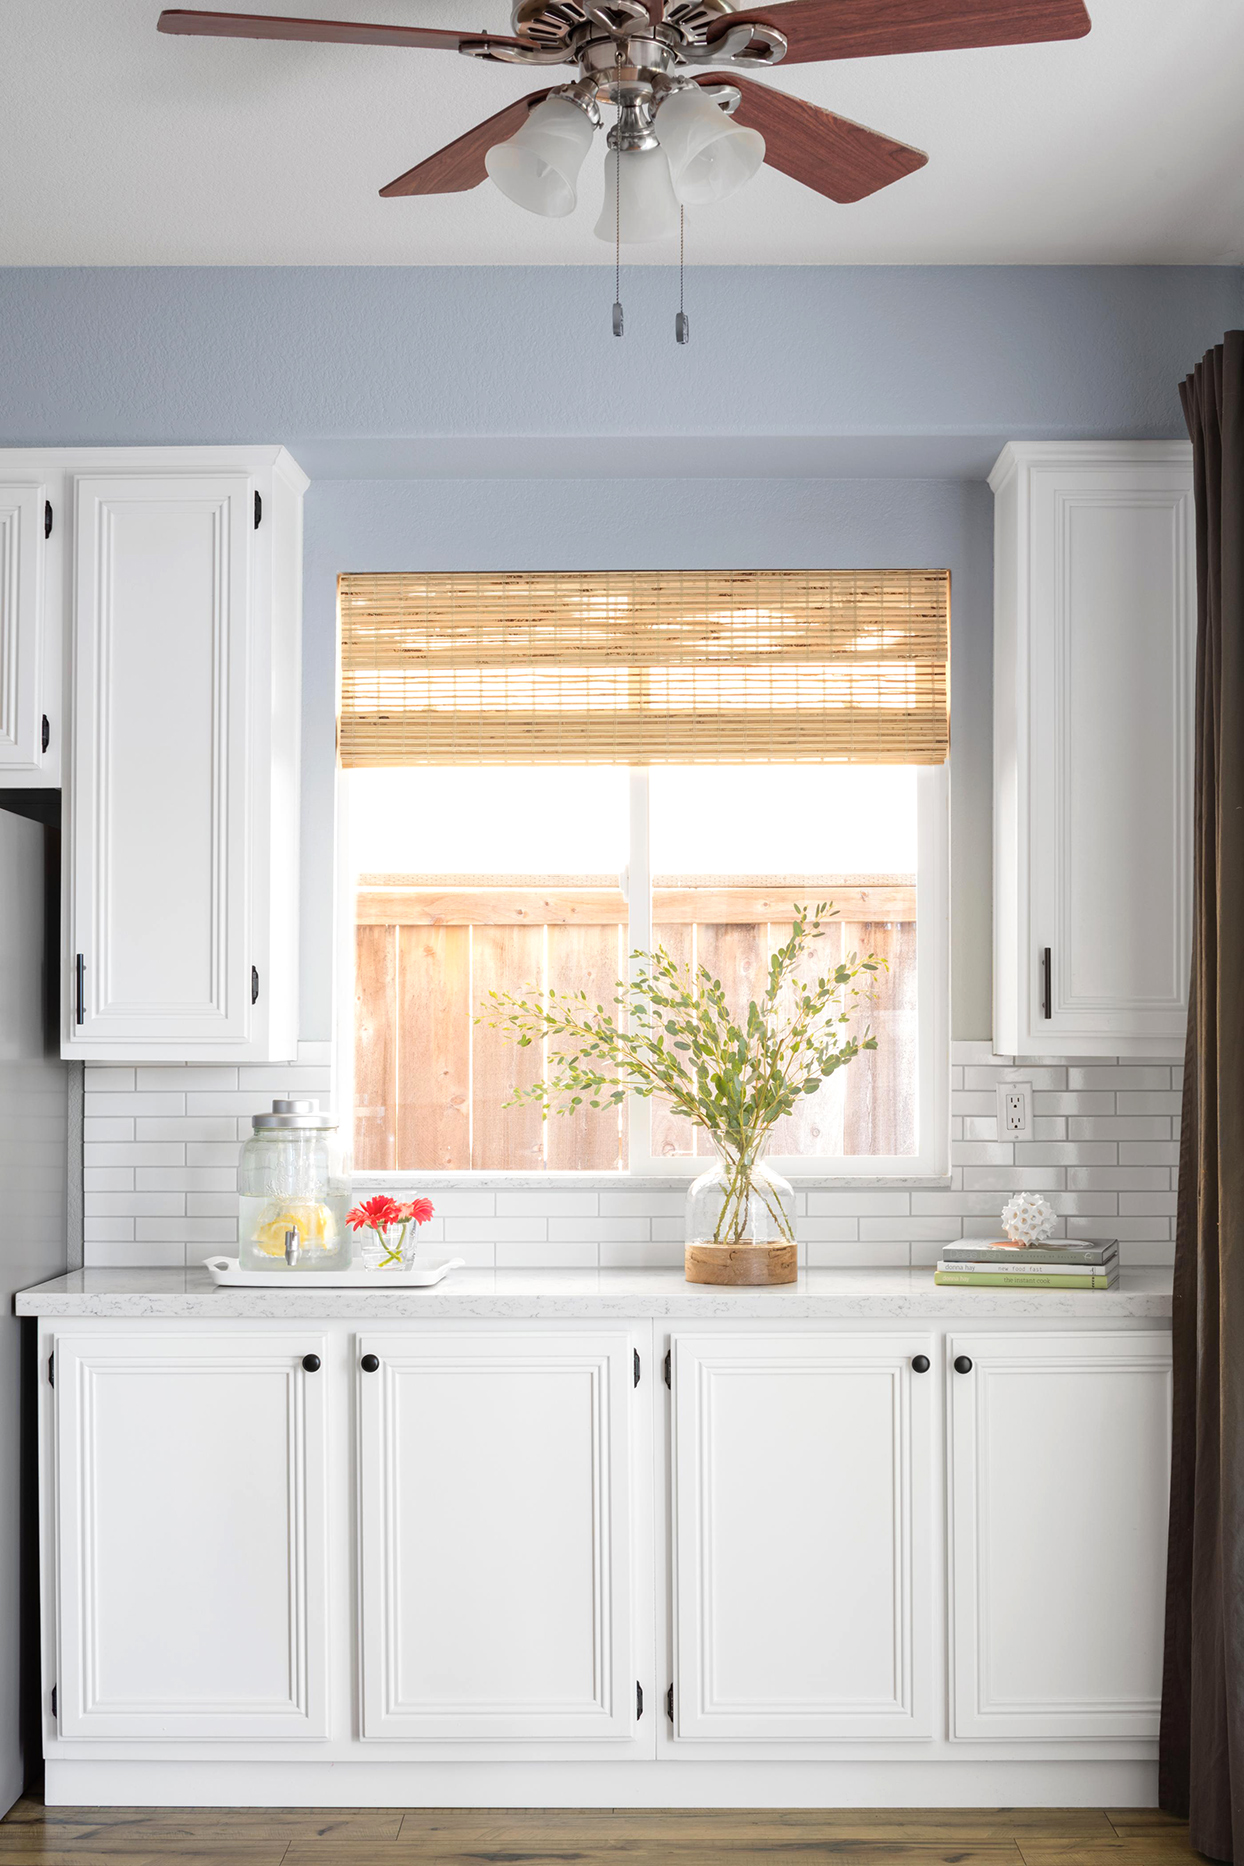 bamboo shades above kitchen counter